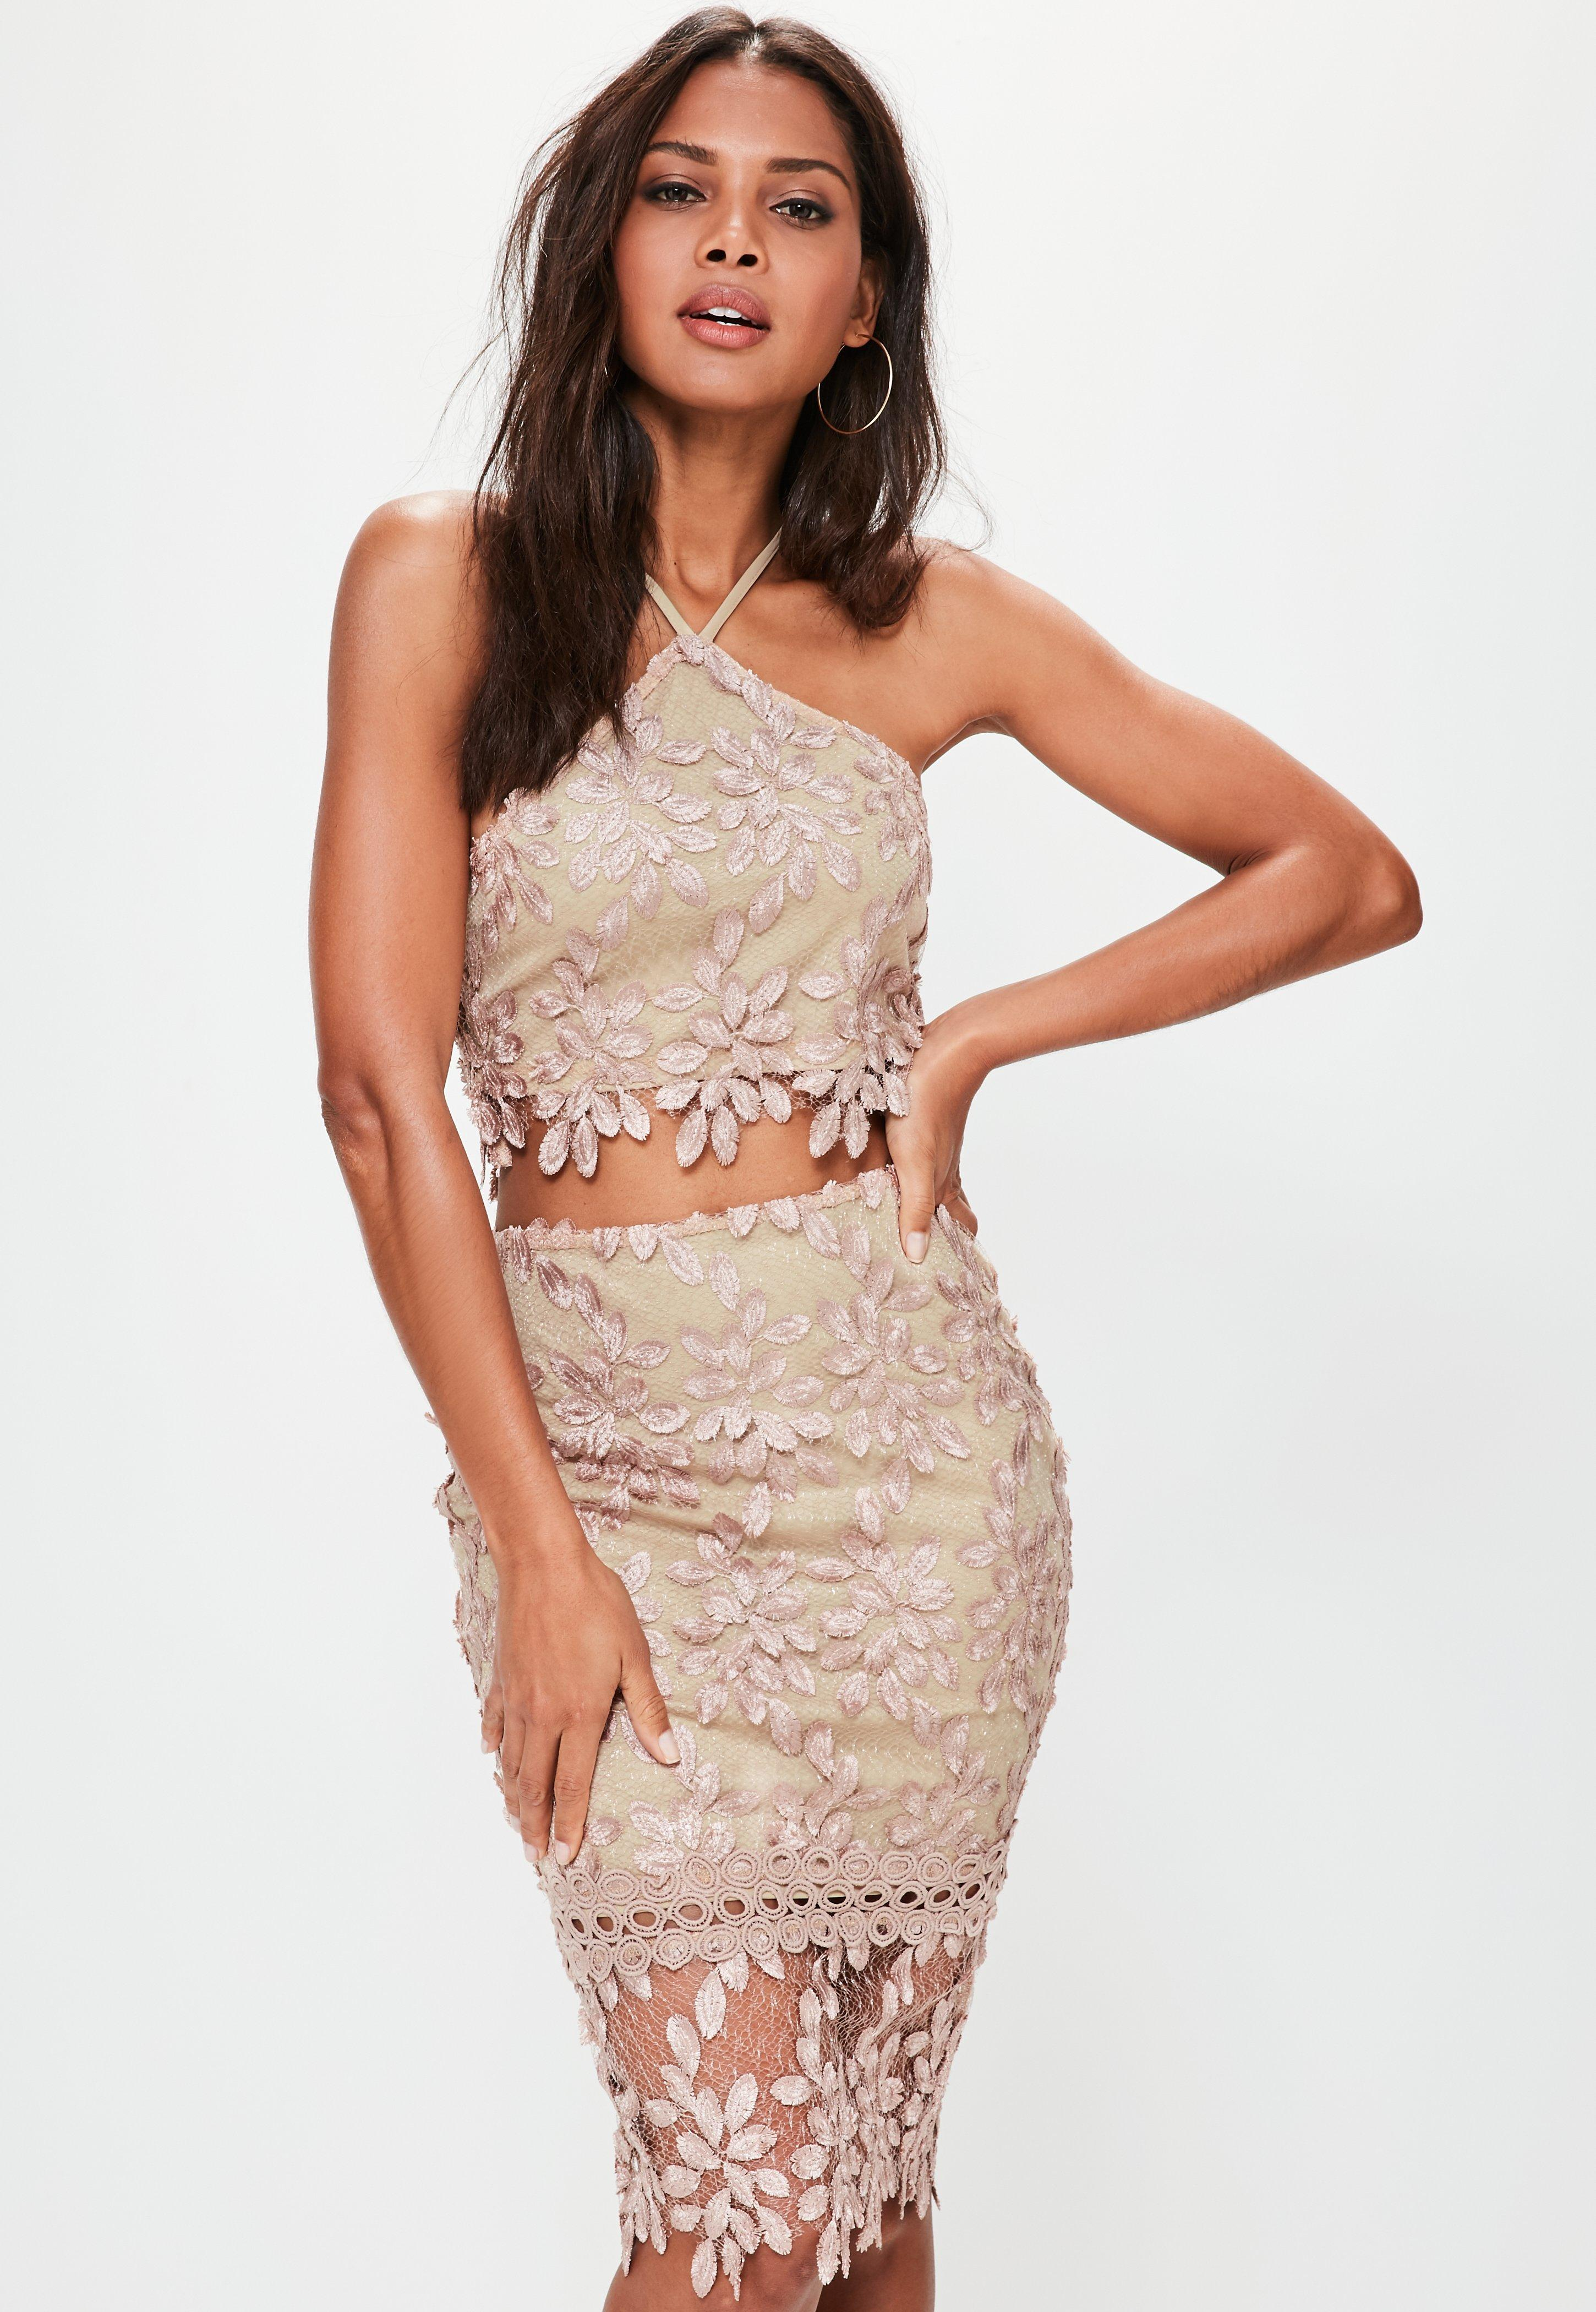 da6d79130 Missguided Premium Nude Floral Lace Midi Skirt in Natural - Lyst